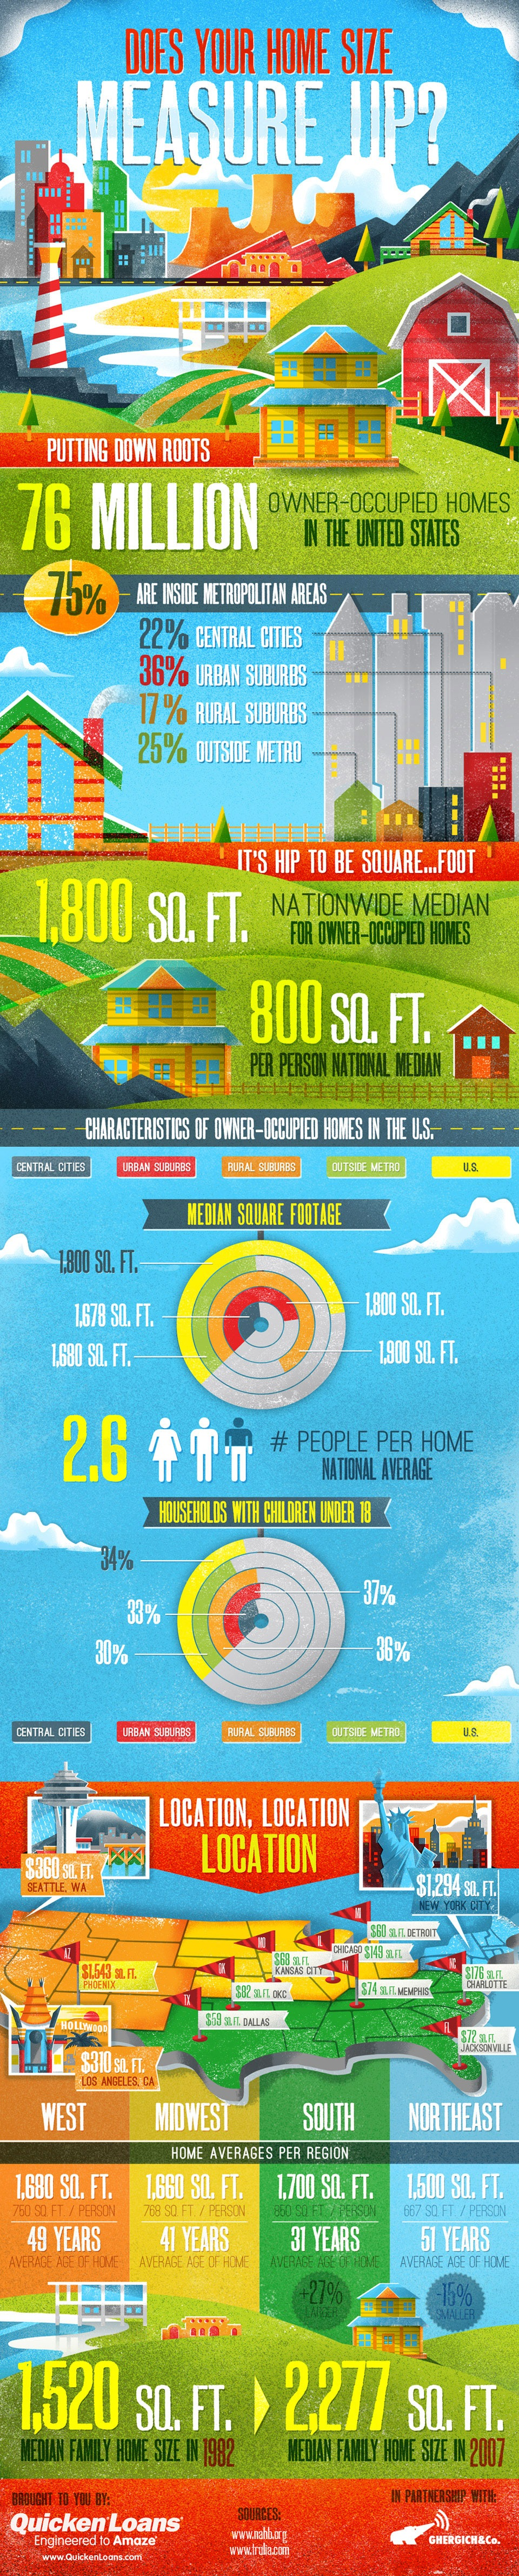 Home Size Matters Infographic from Quicken Loans